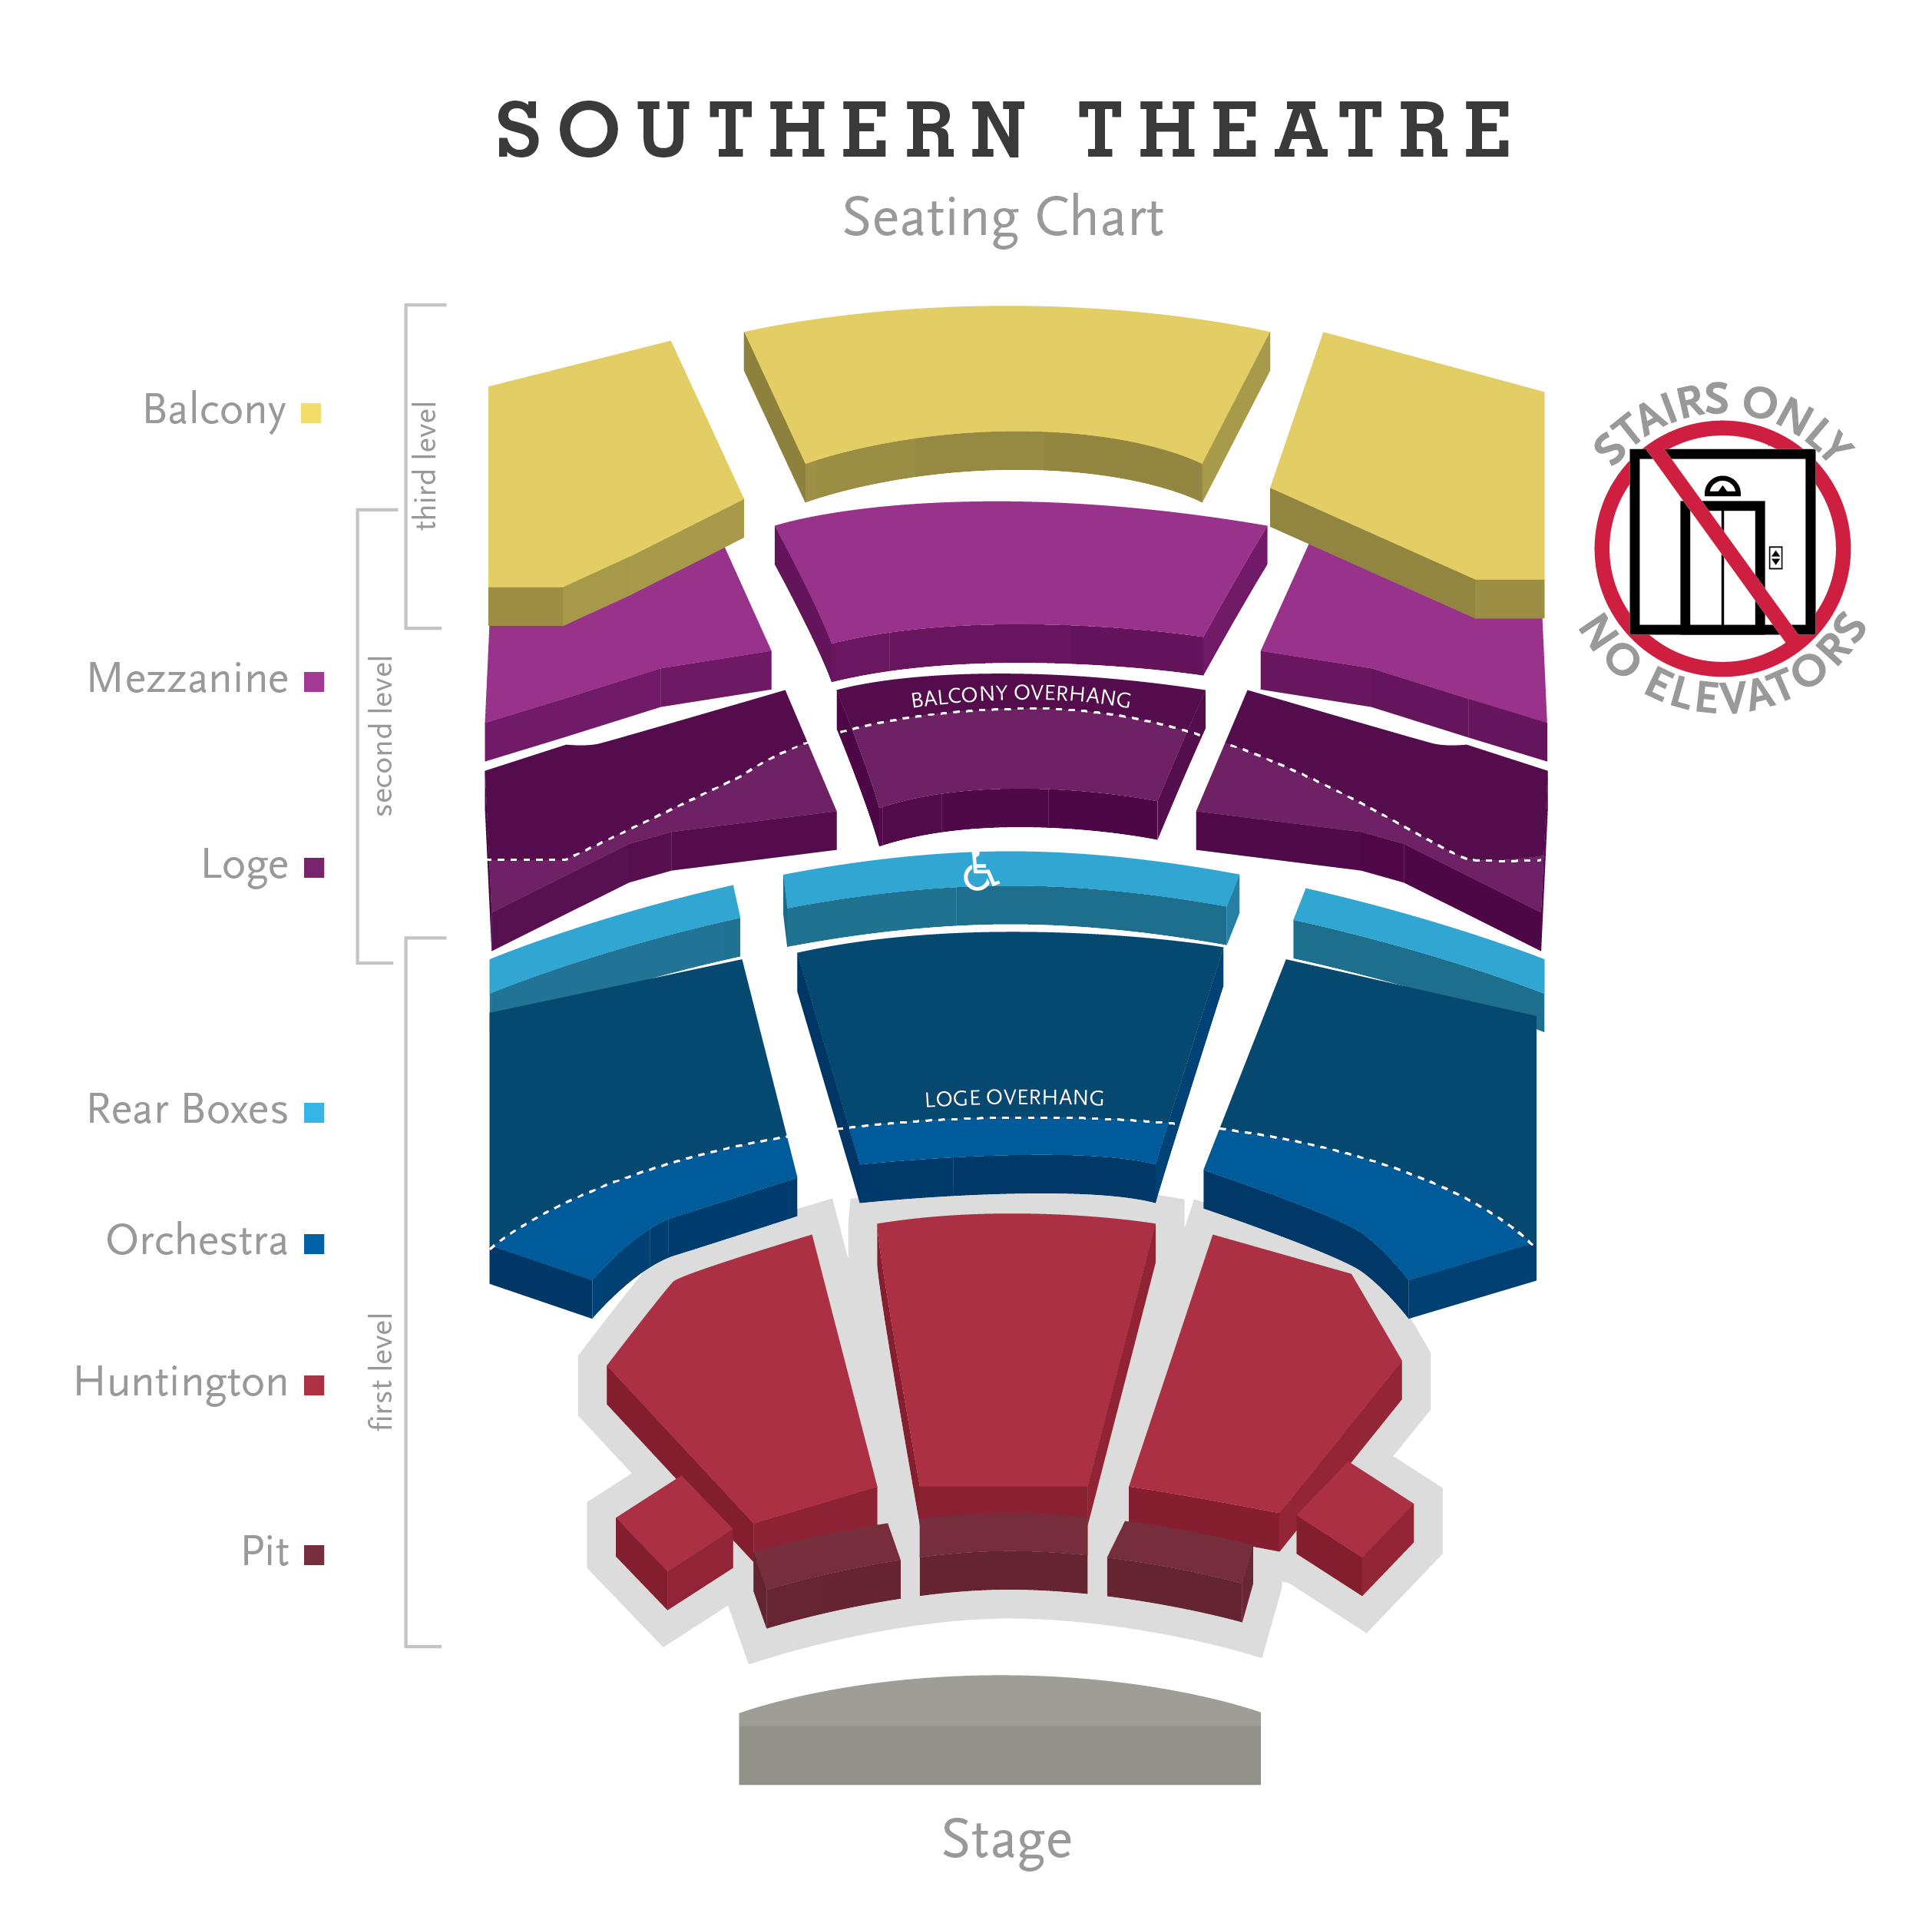 Southern Theatre Seating